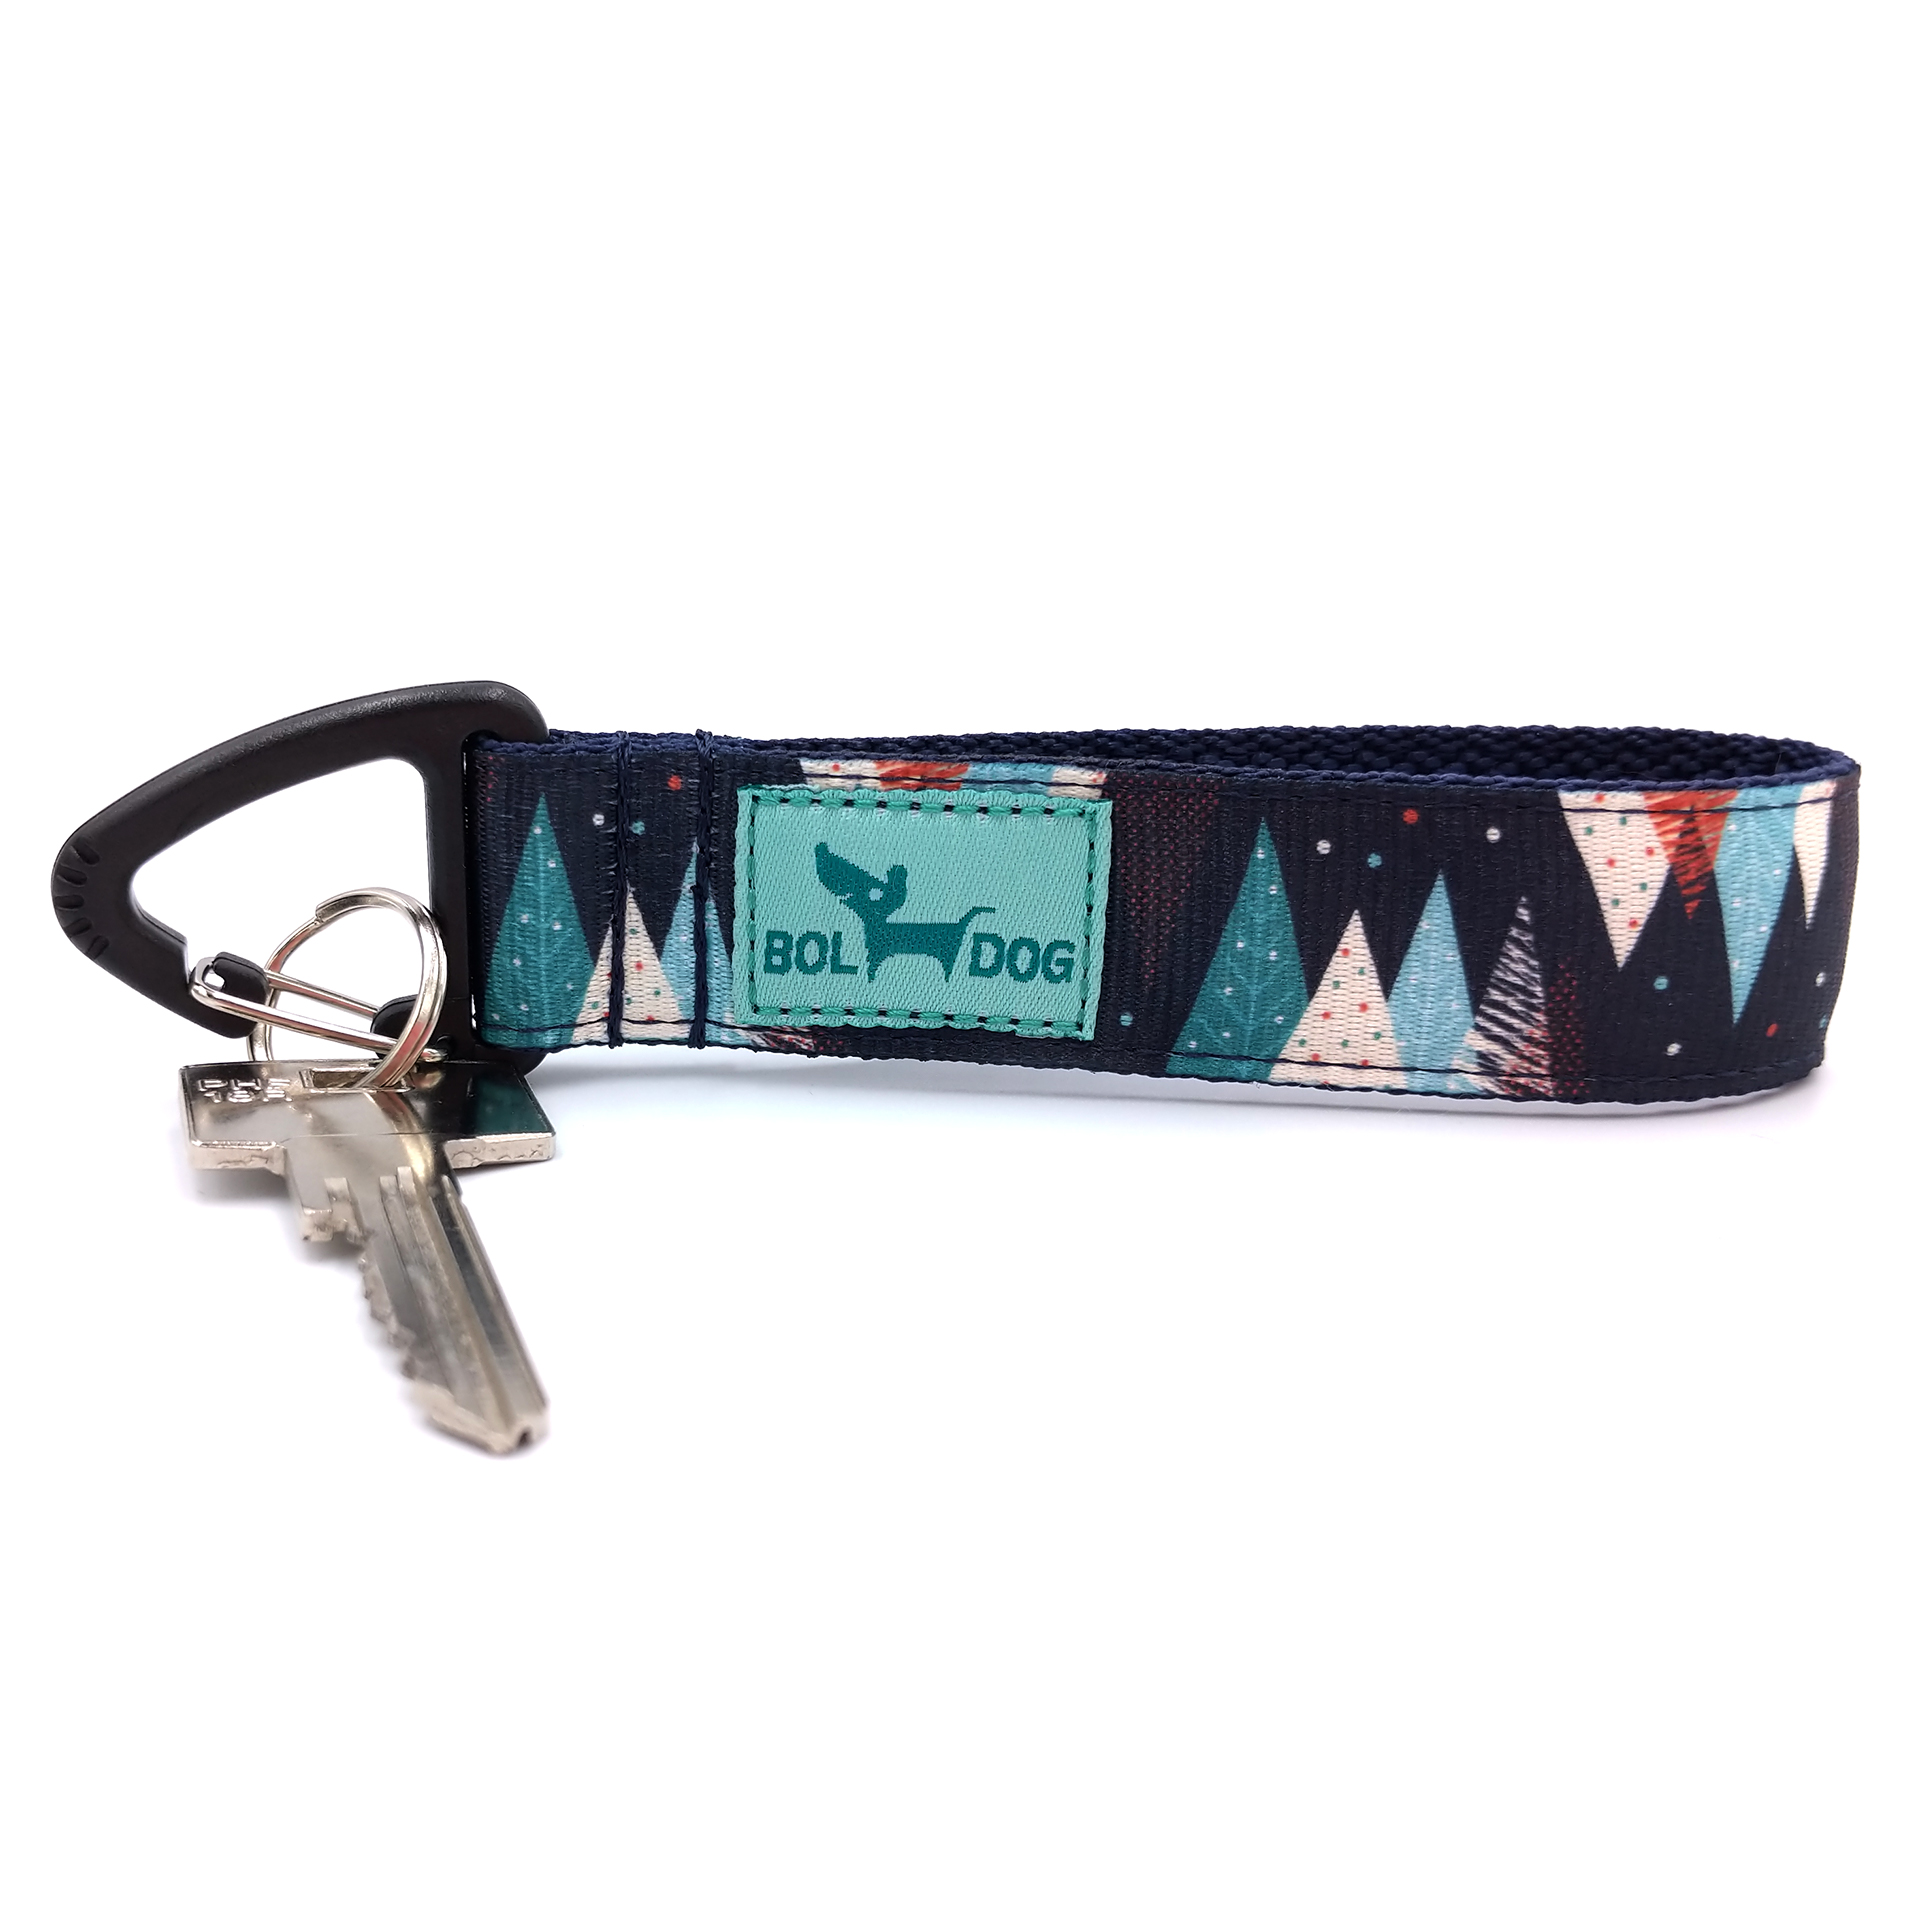 Trees key holder